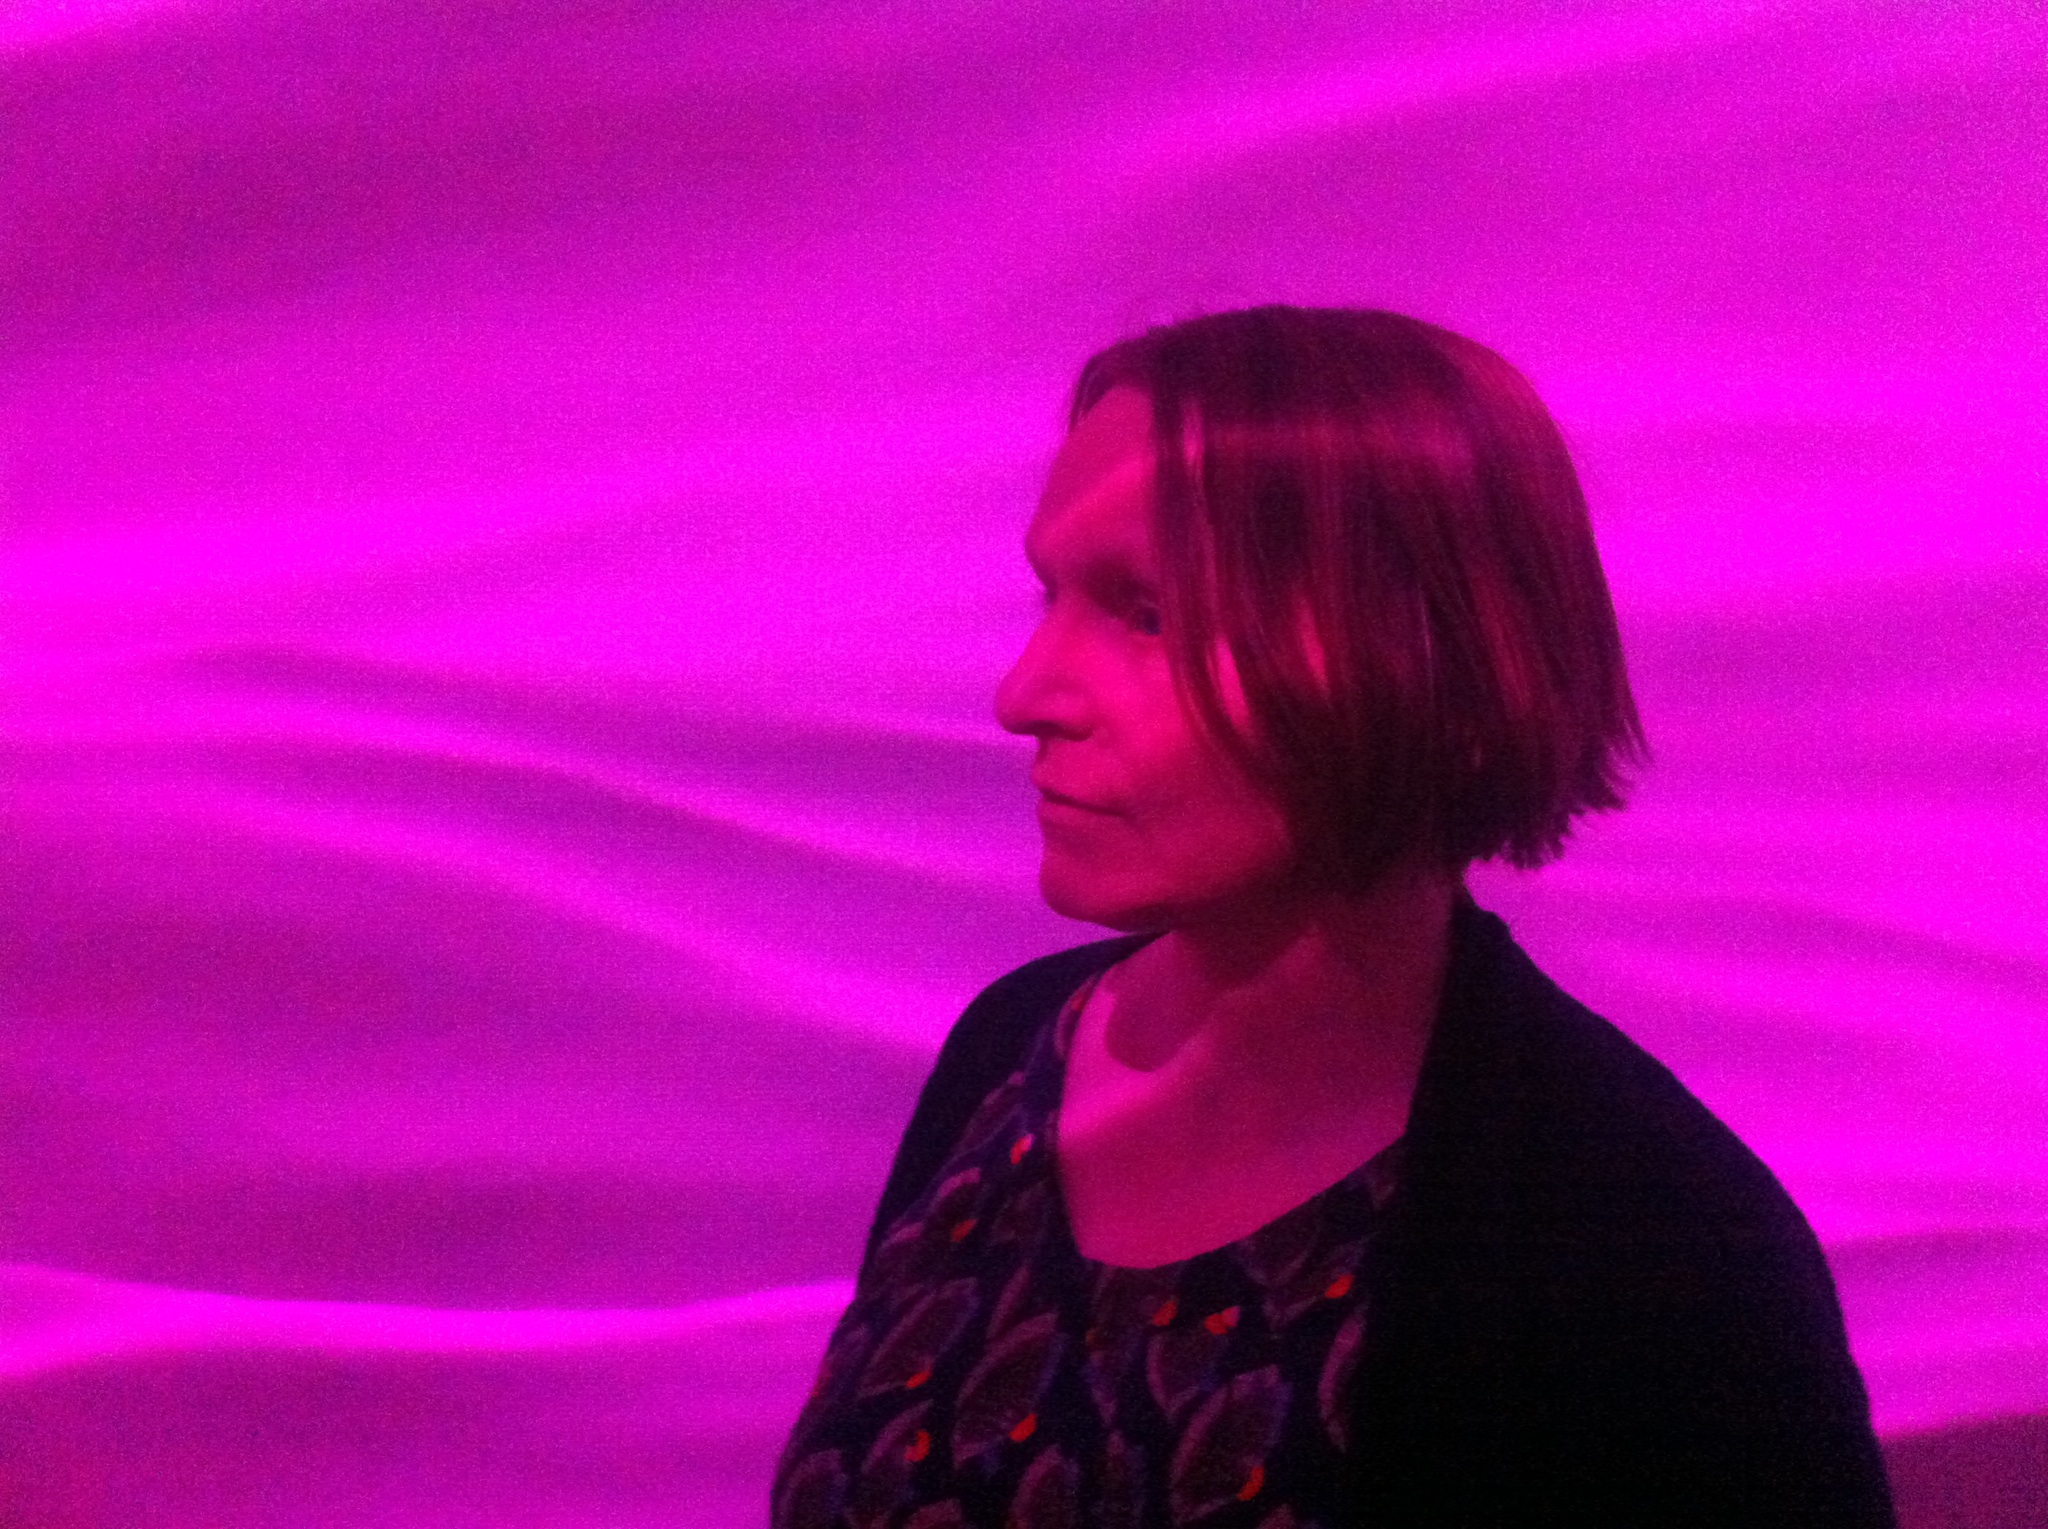 Sarah Angliss: The Composers' Fund